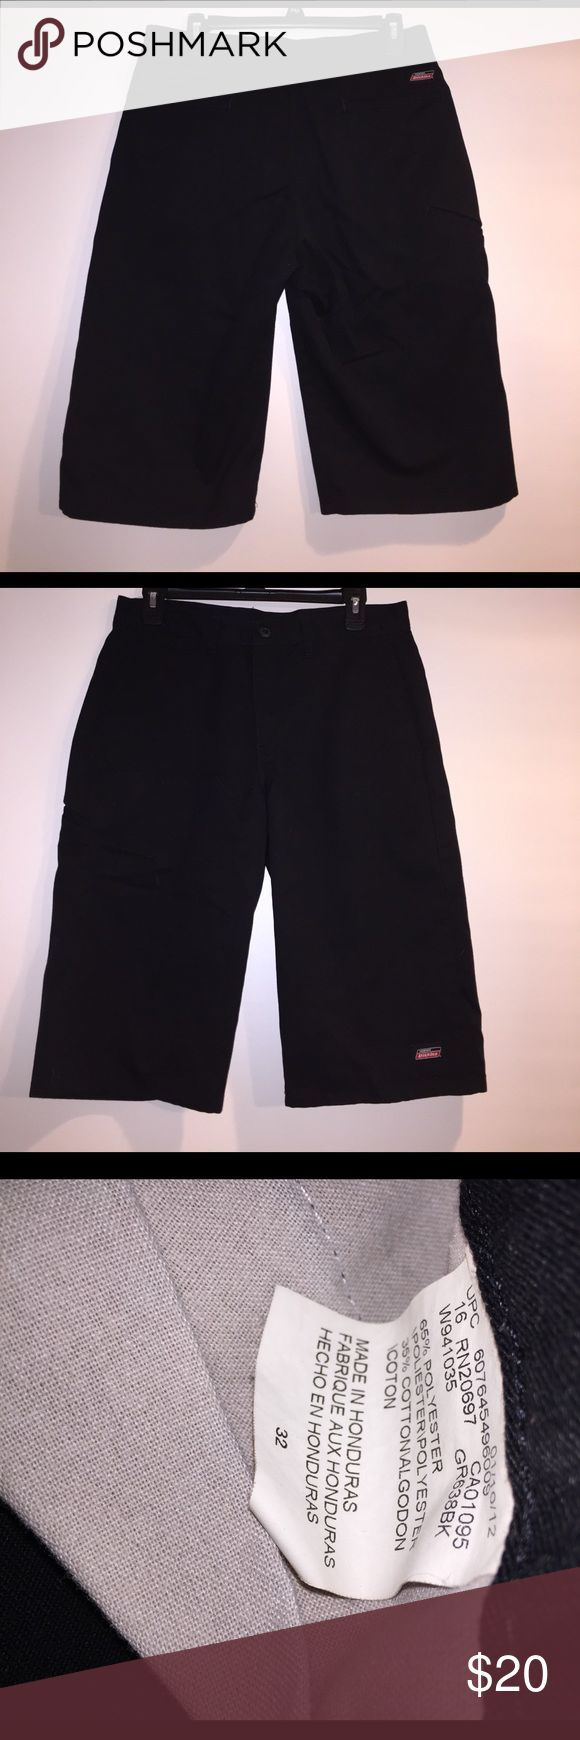 Dickies shorts Great gently worn size 32W dickies shorts Dickies Shorts Cargo